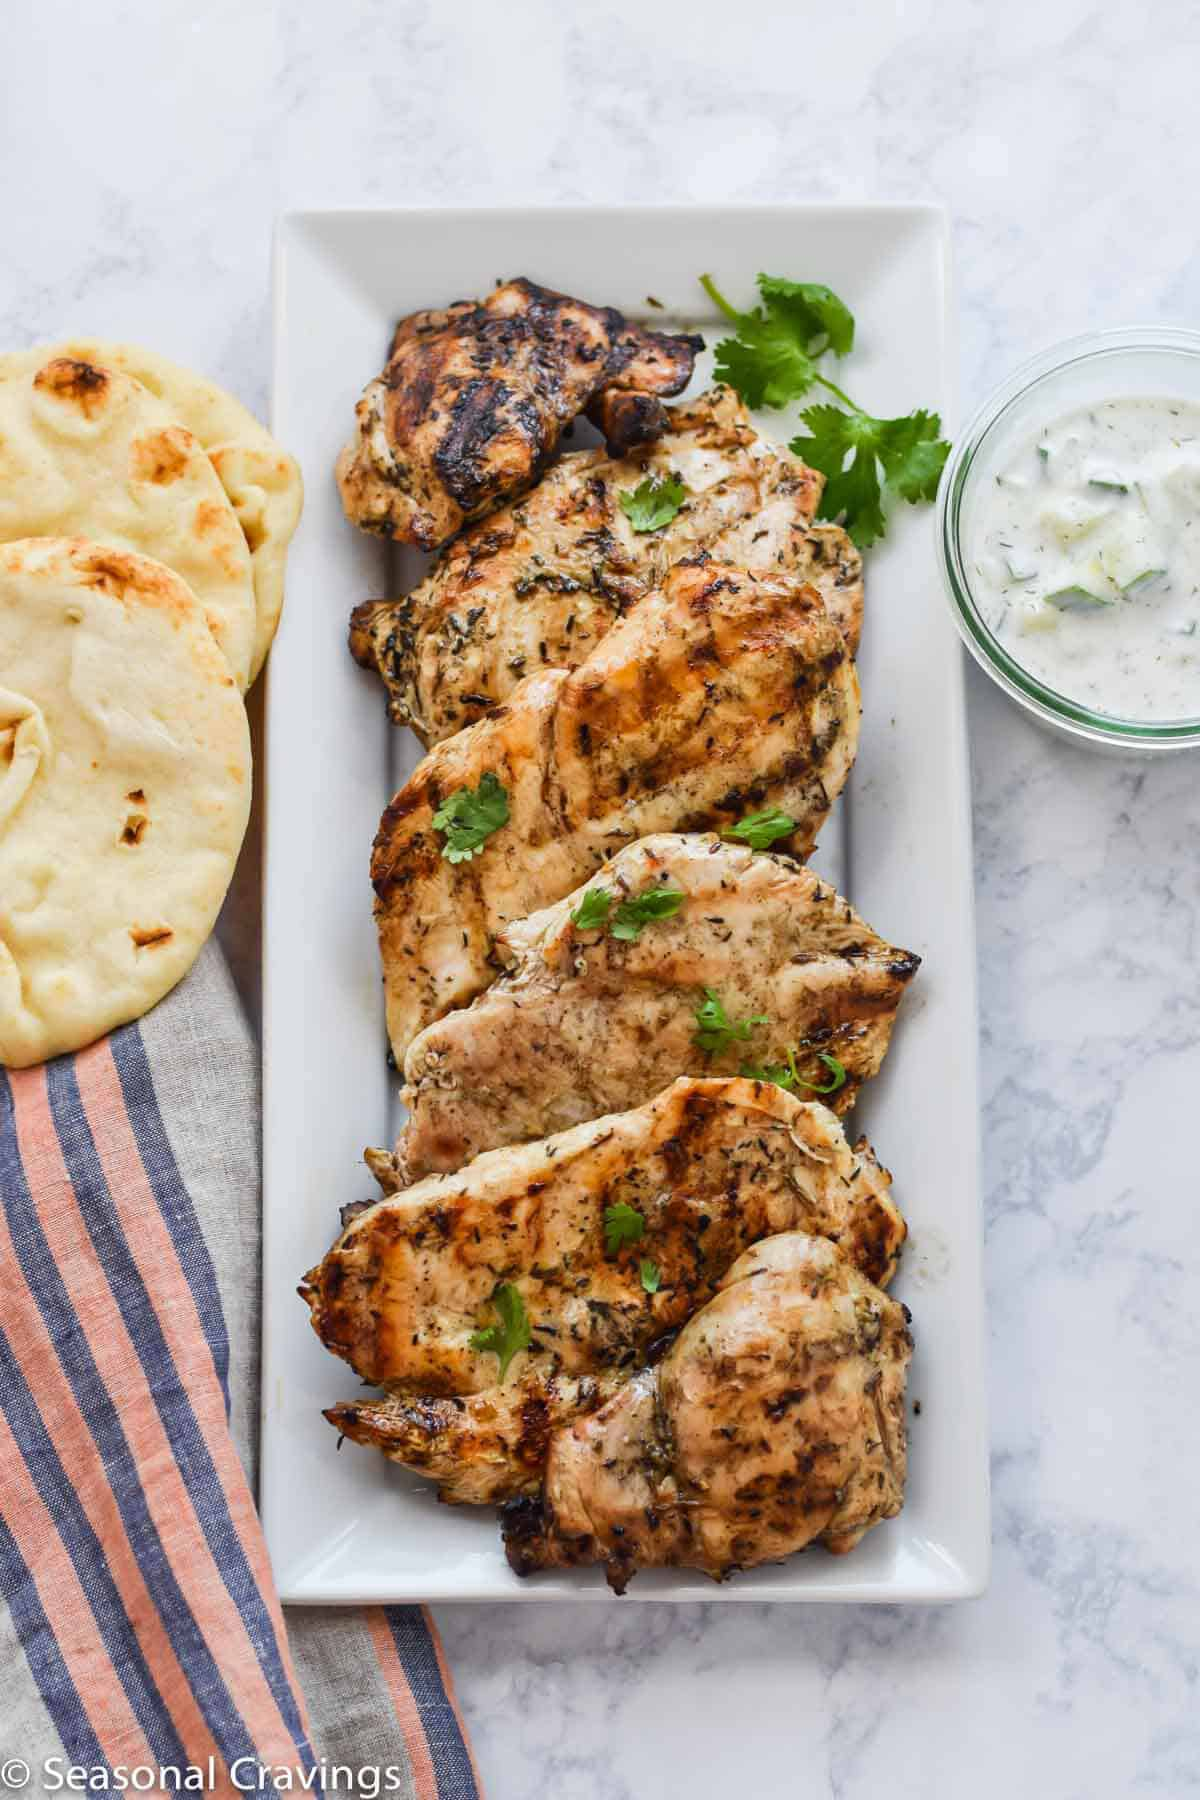 Grilled Chicken Souvlaki on a white plate with bread